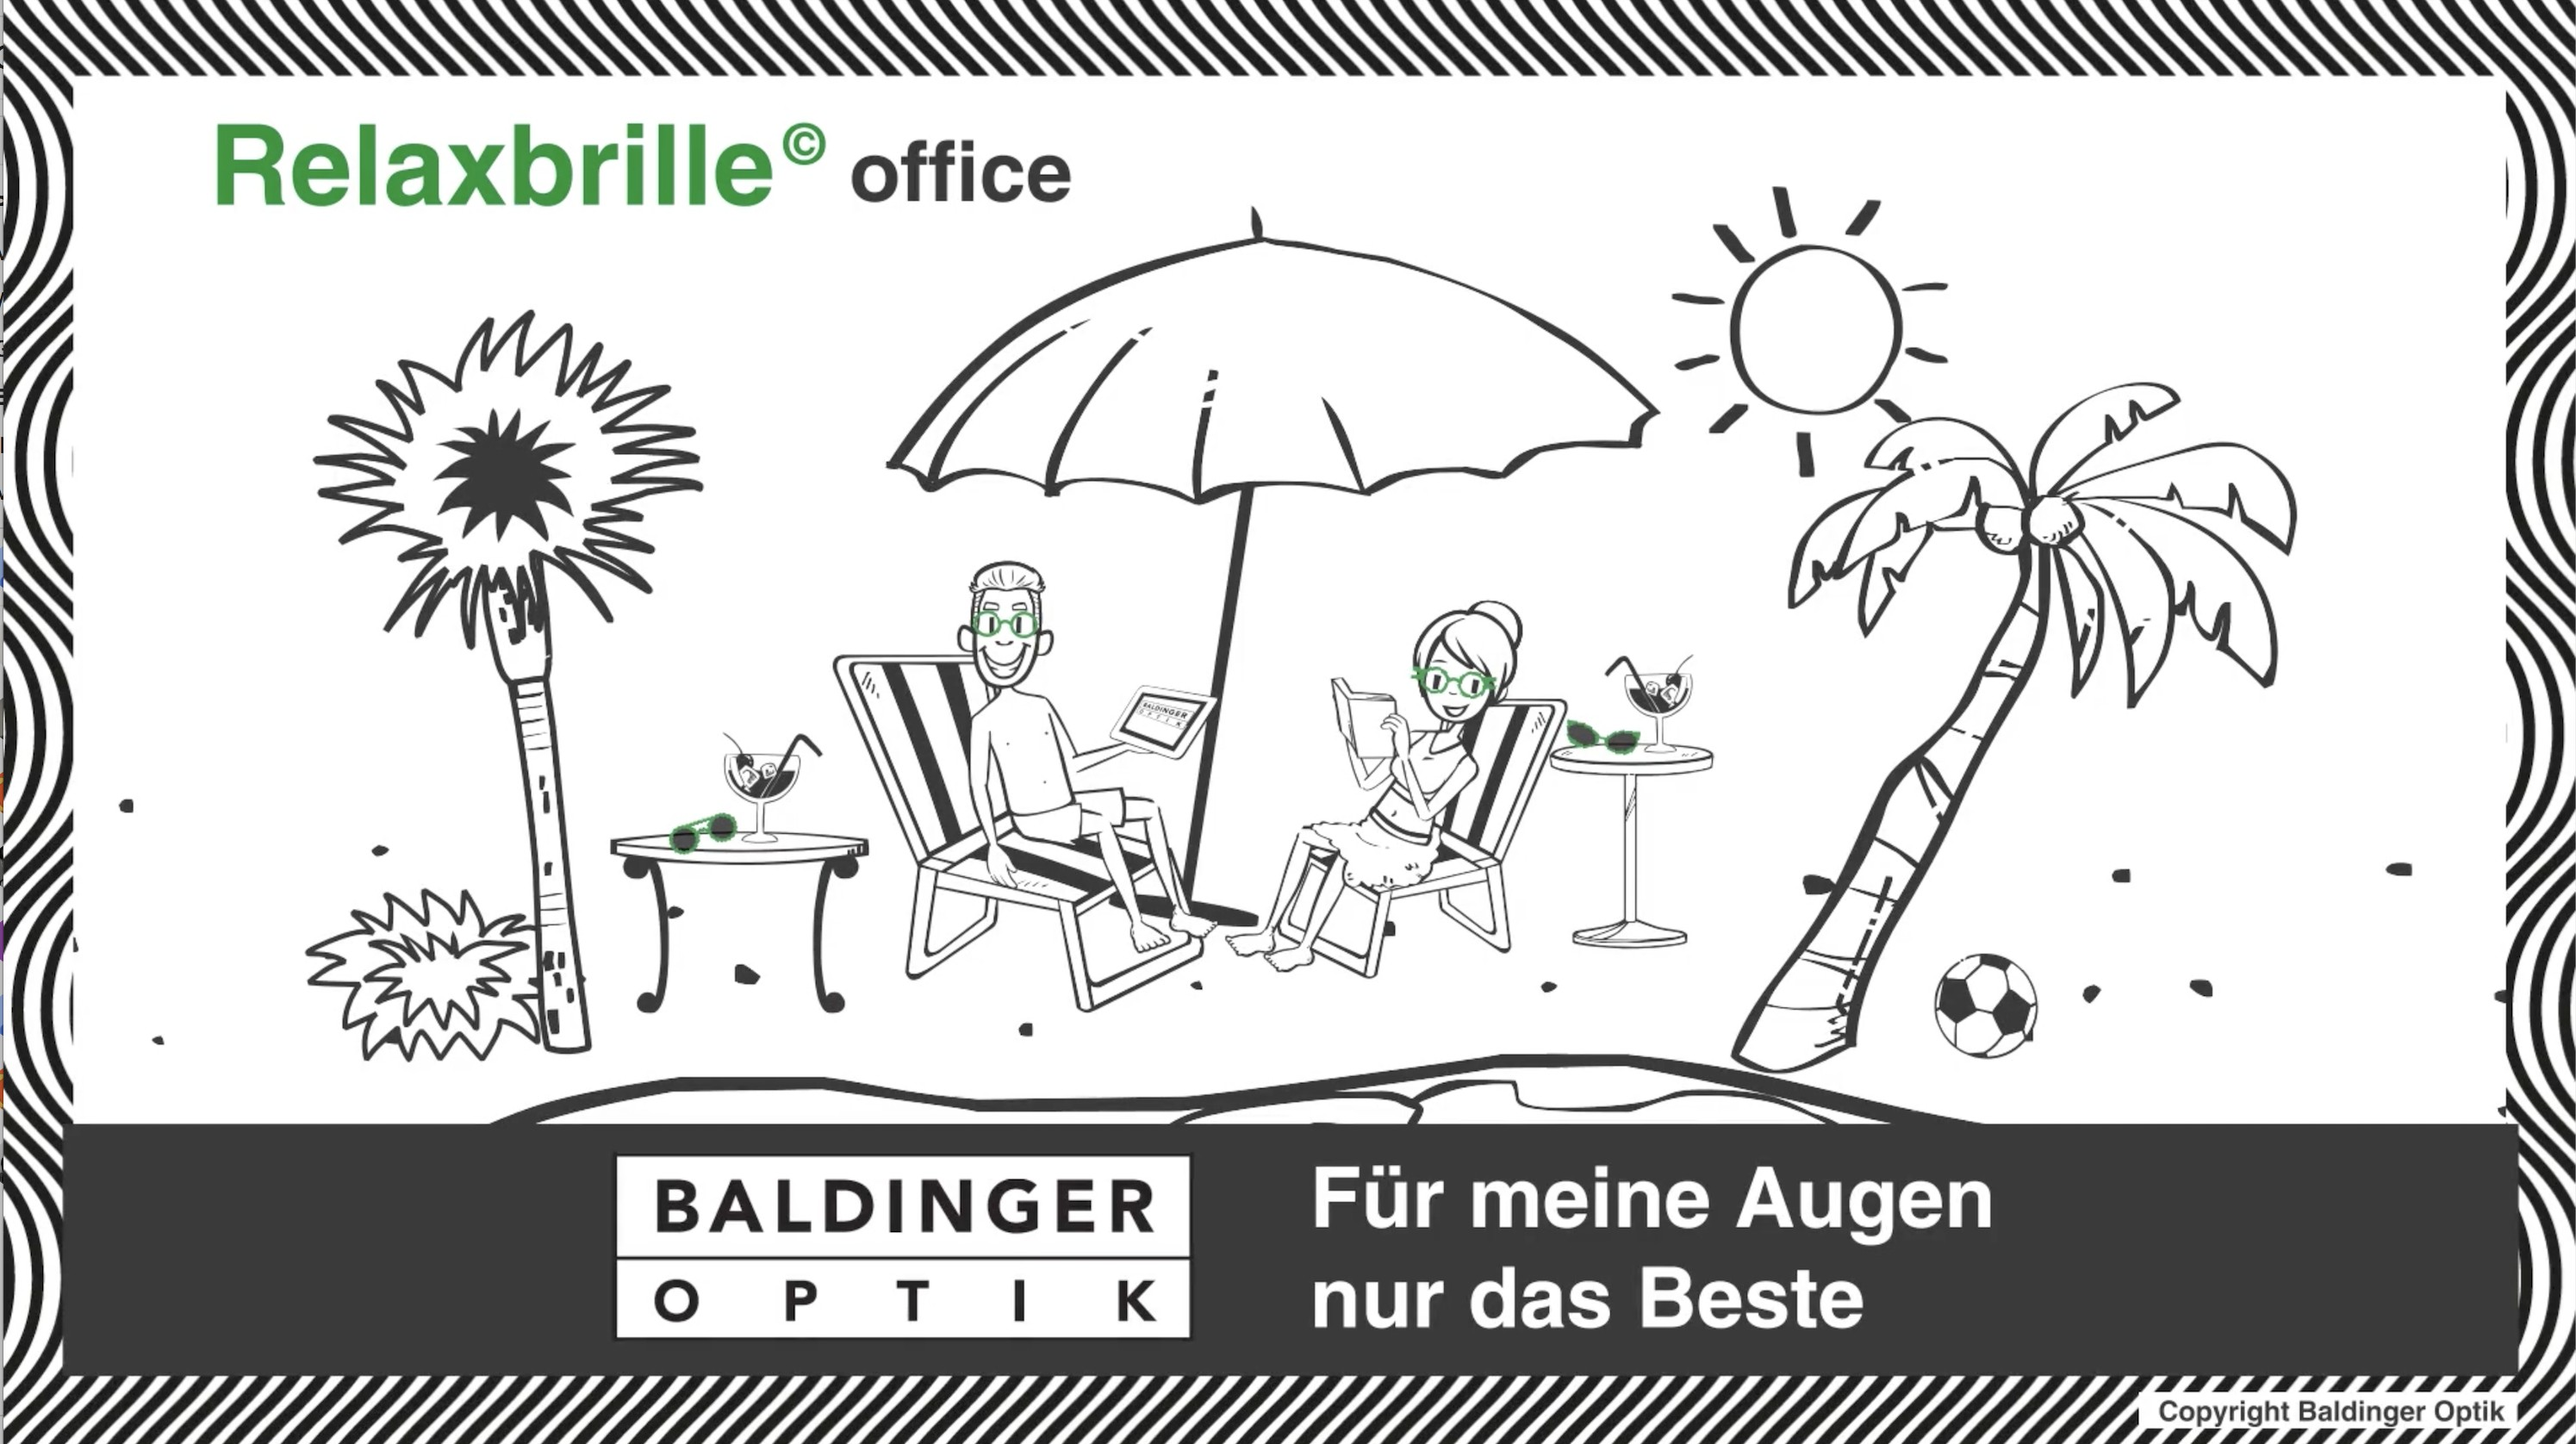 RELAXBRILLE office